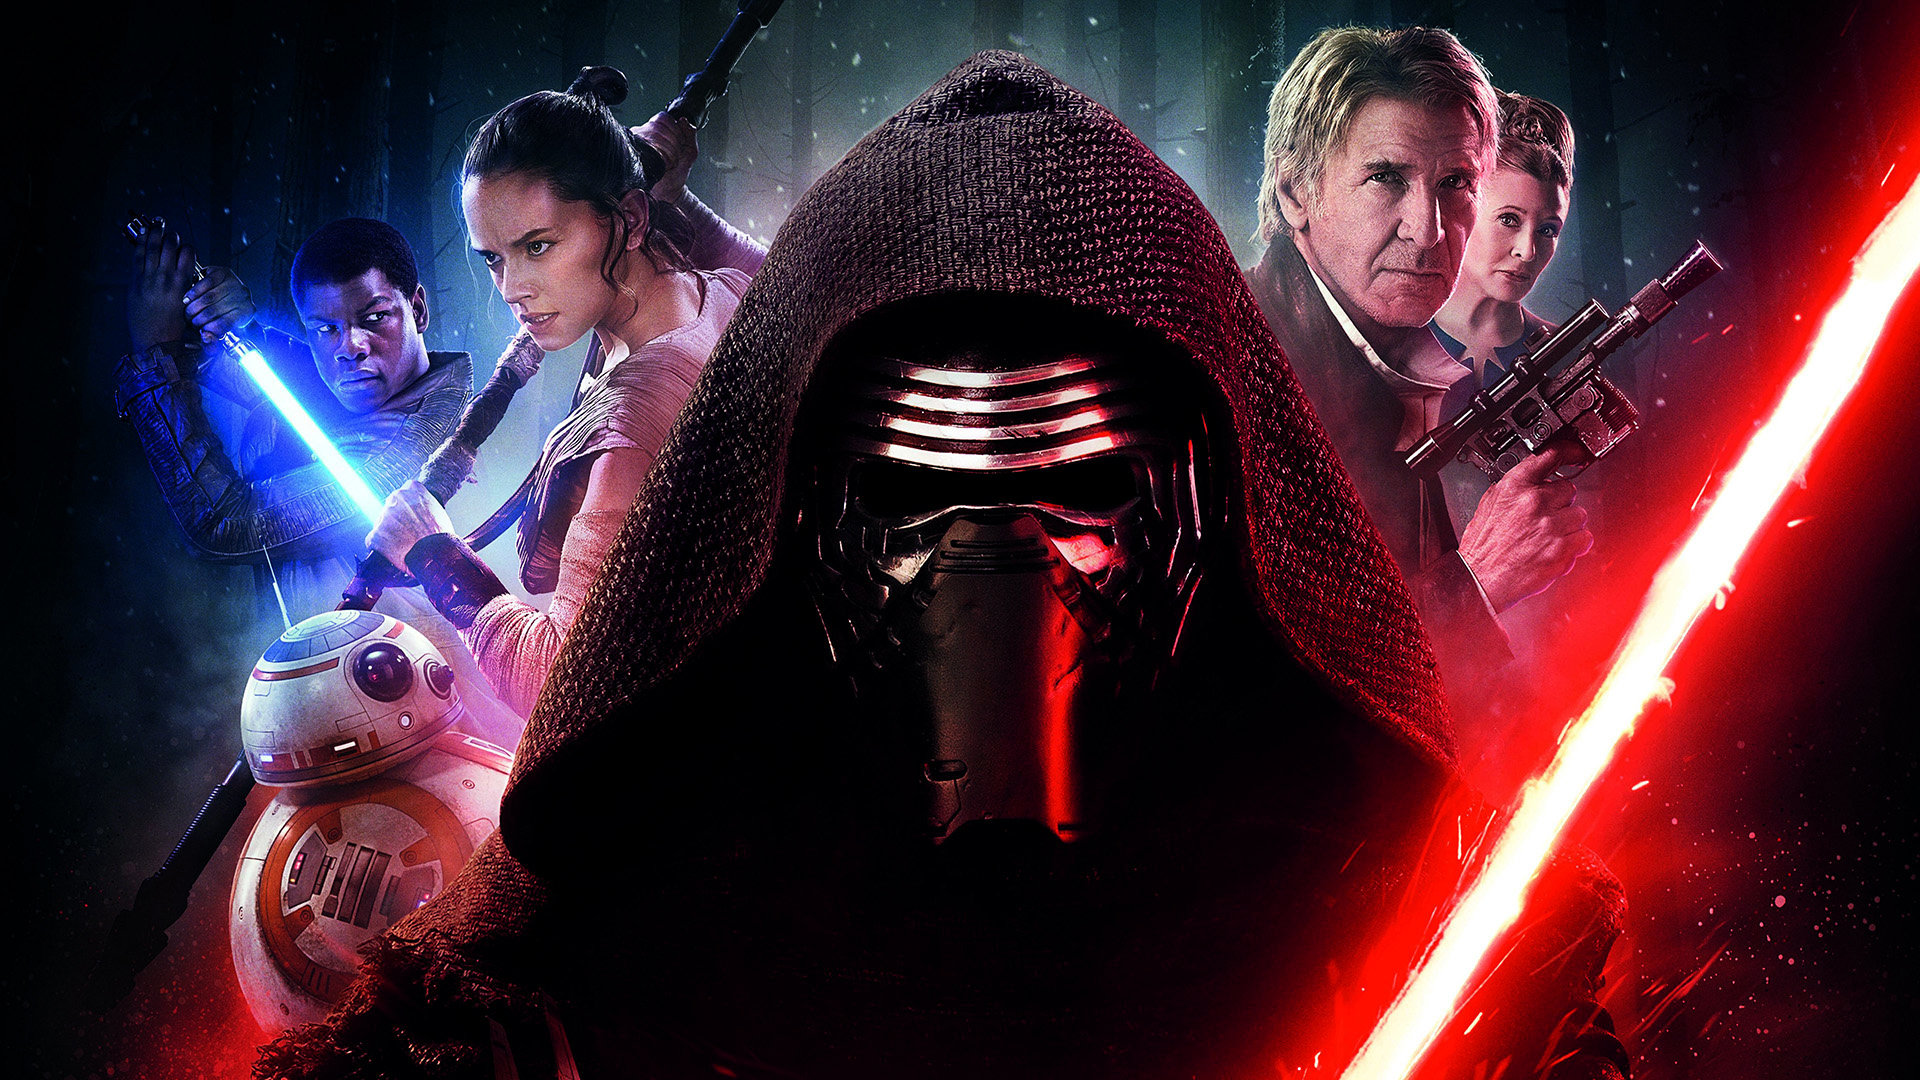 Awesome Star Wars Episode 7 Vii The Force Awakens Free